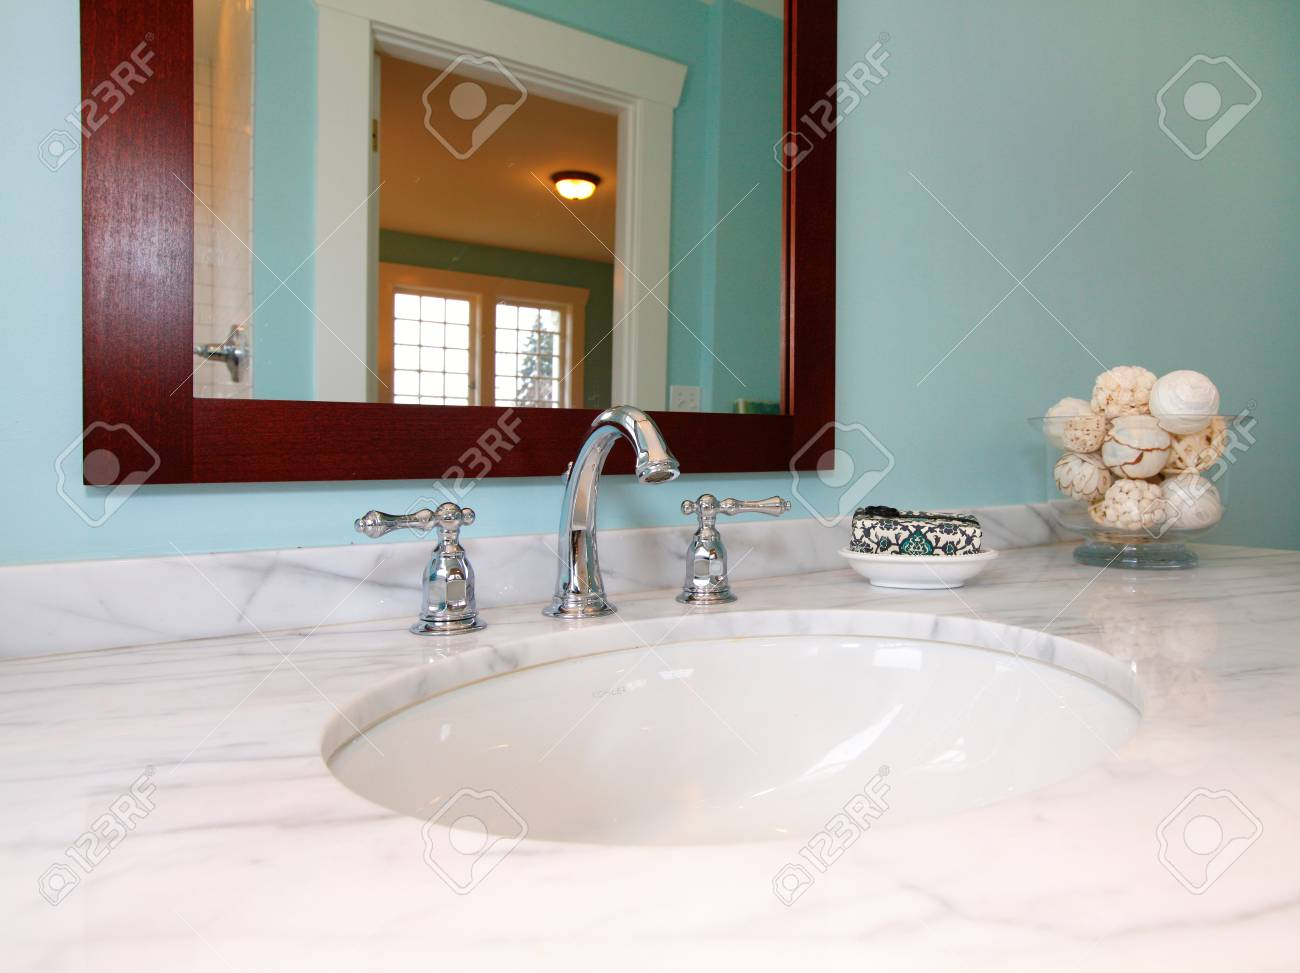 Blue Bathroom With White Marble Sink Stock Photo, Picture And ...